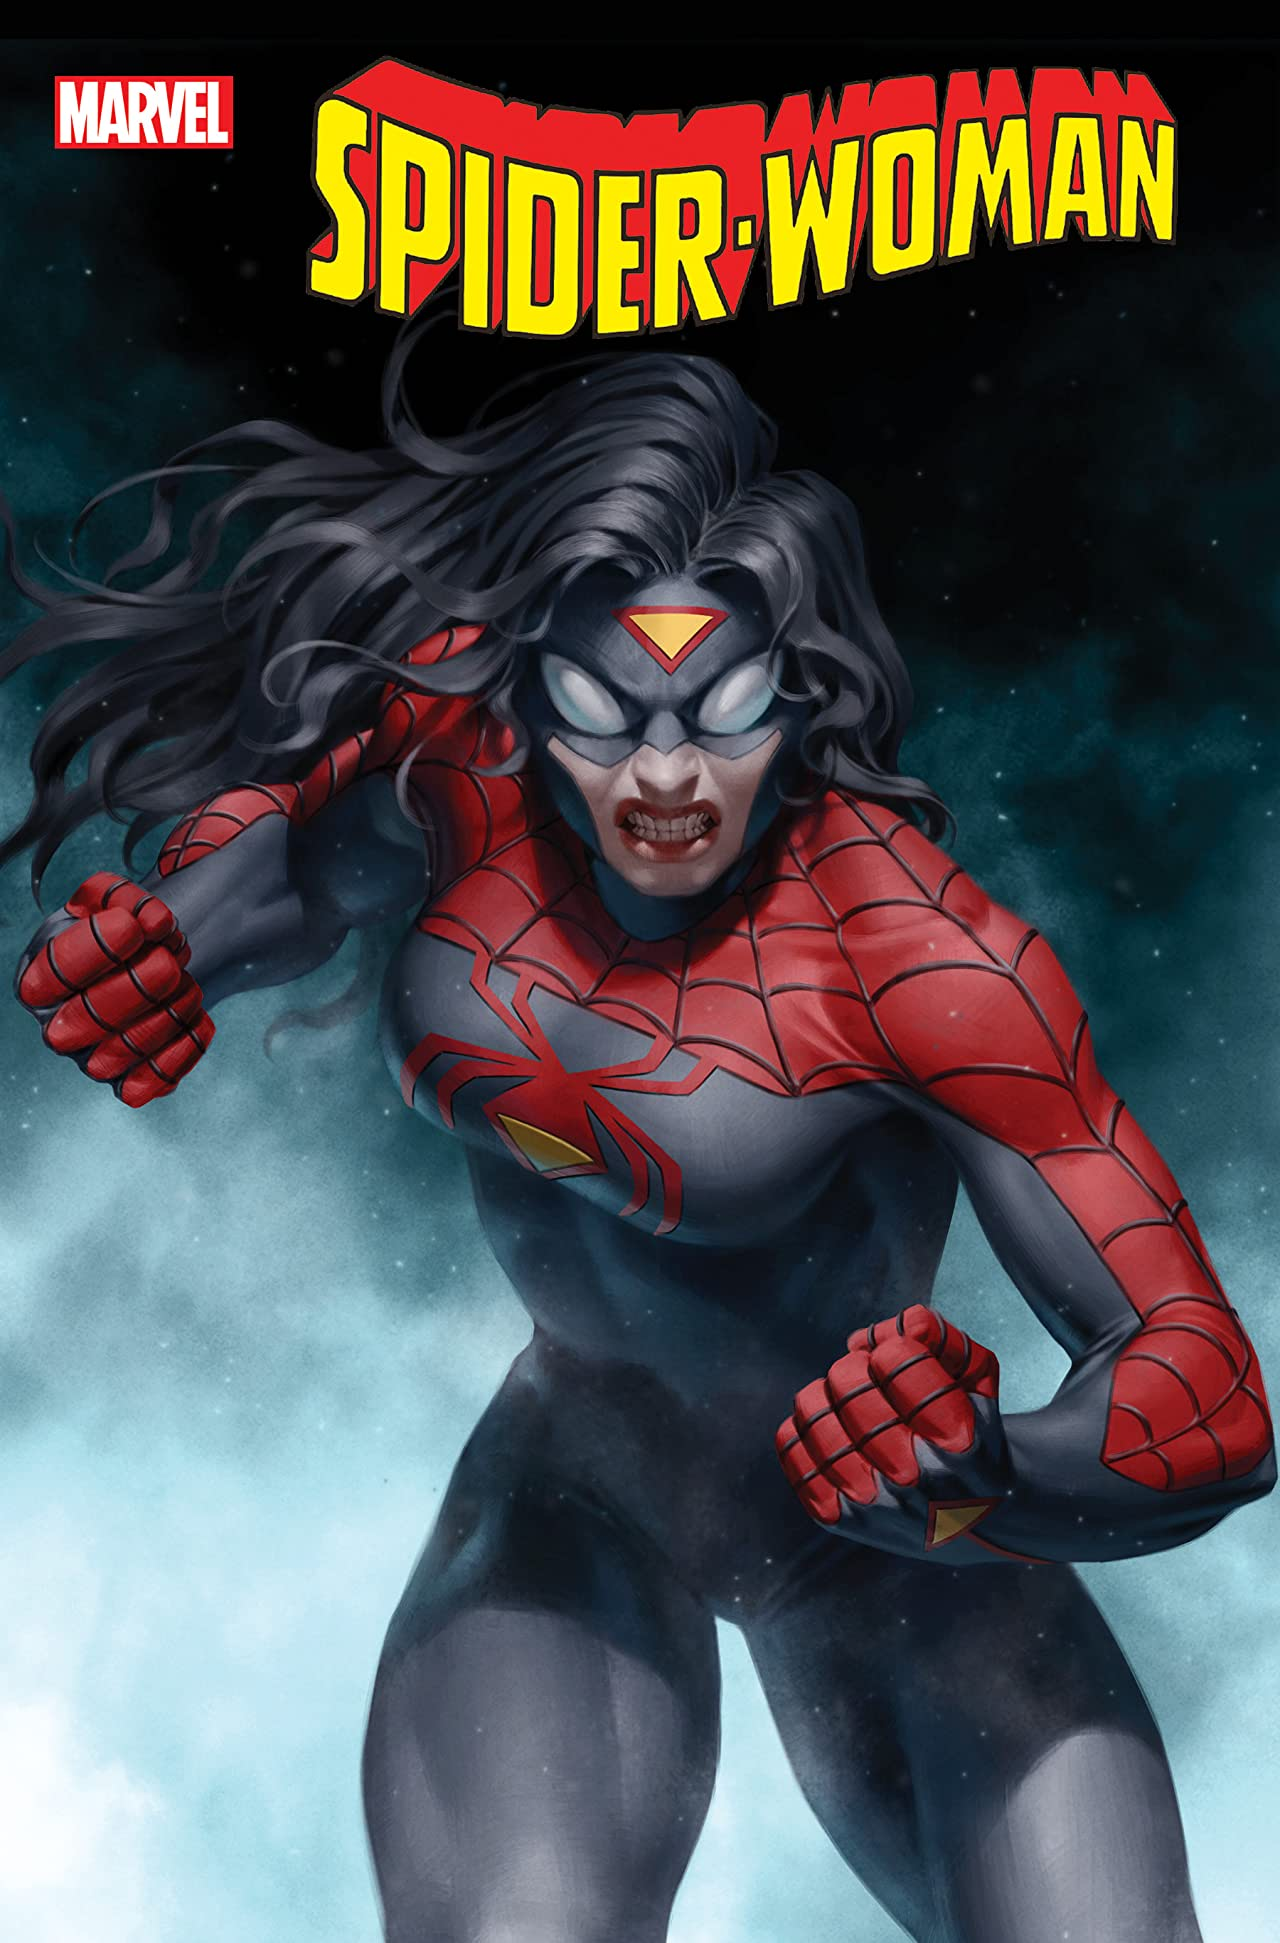 Spider-Woman Vol. 2: King In Black